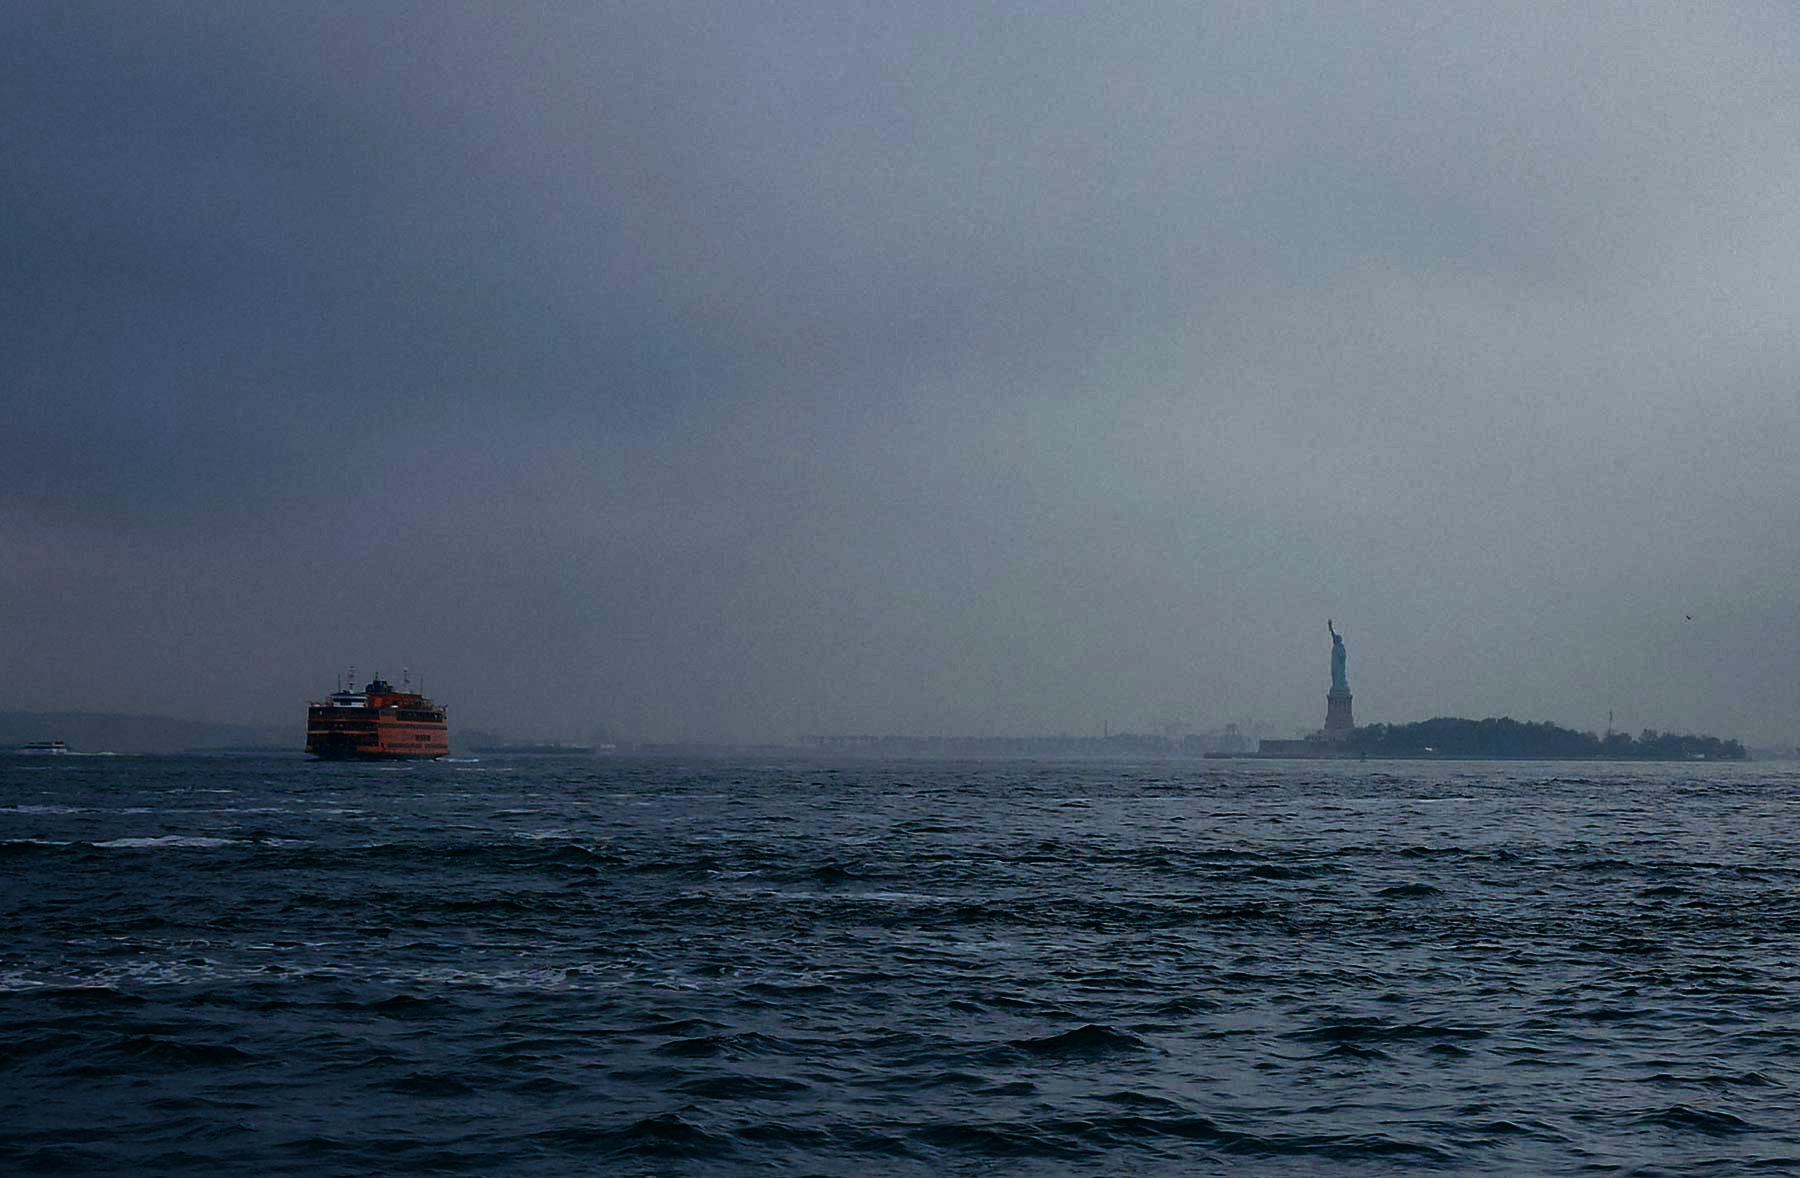 A dark sea with the statue of liberty on the right and a ferry on the left.